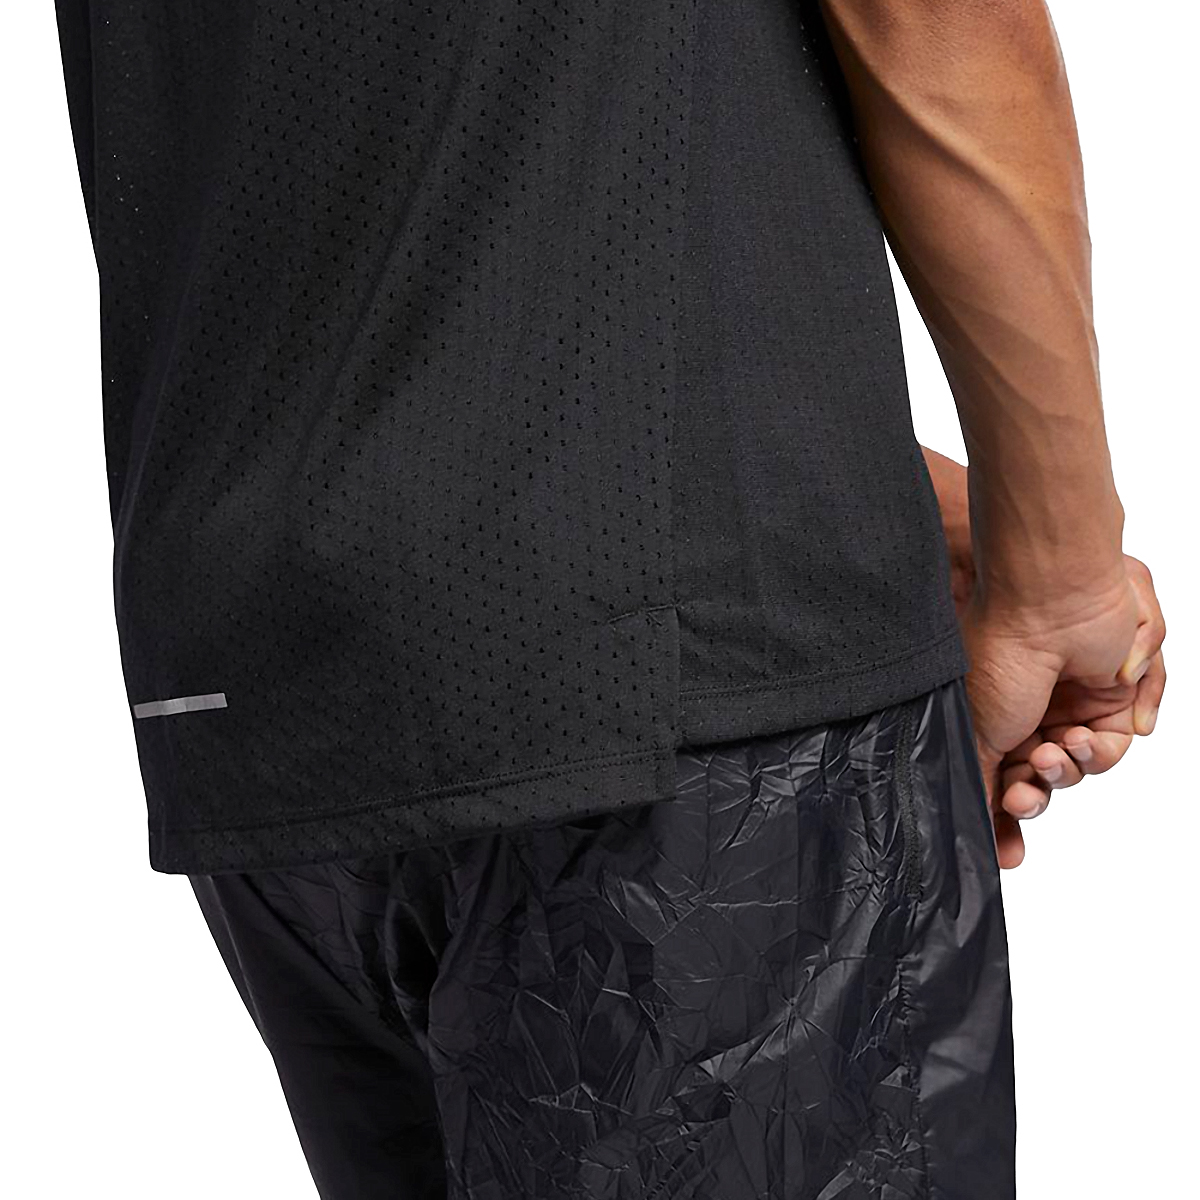 Men's Nike Breathe Rise 365 Short Sleeve  - Color: Black/Reflective - Size: S, Black/Reflective, large, image 4